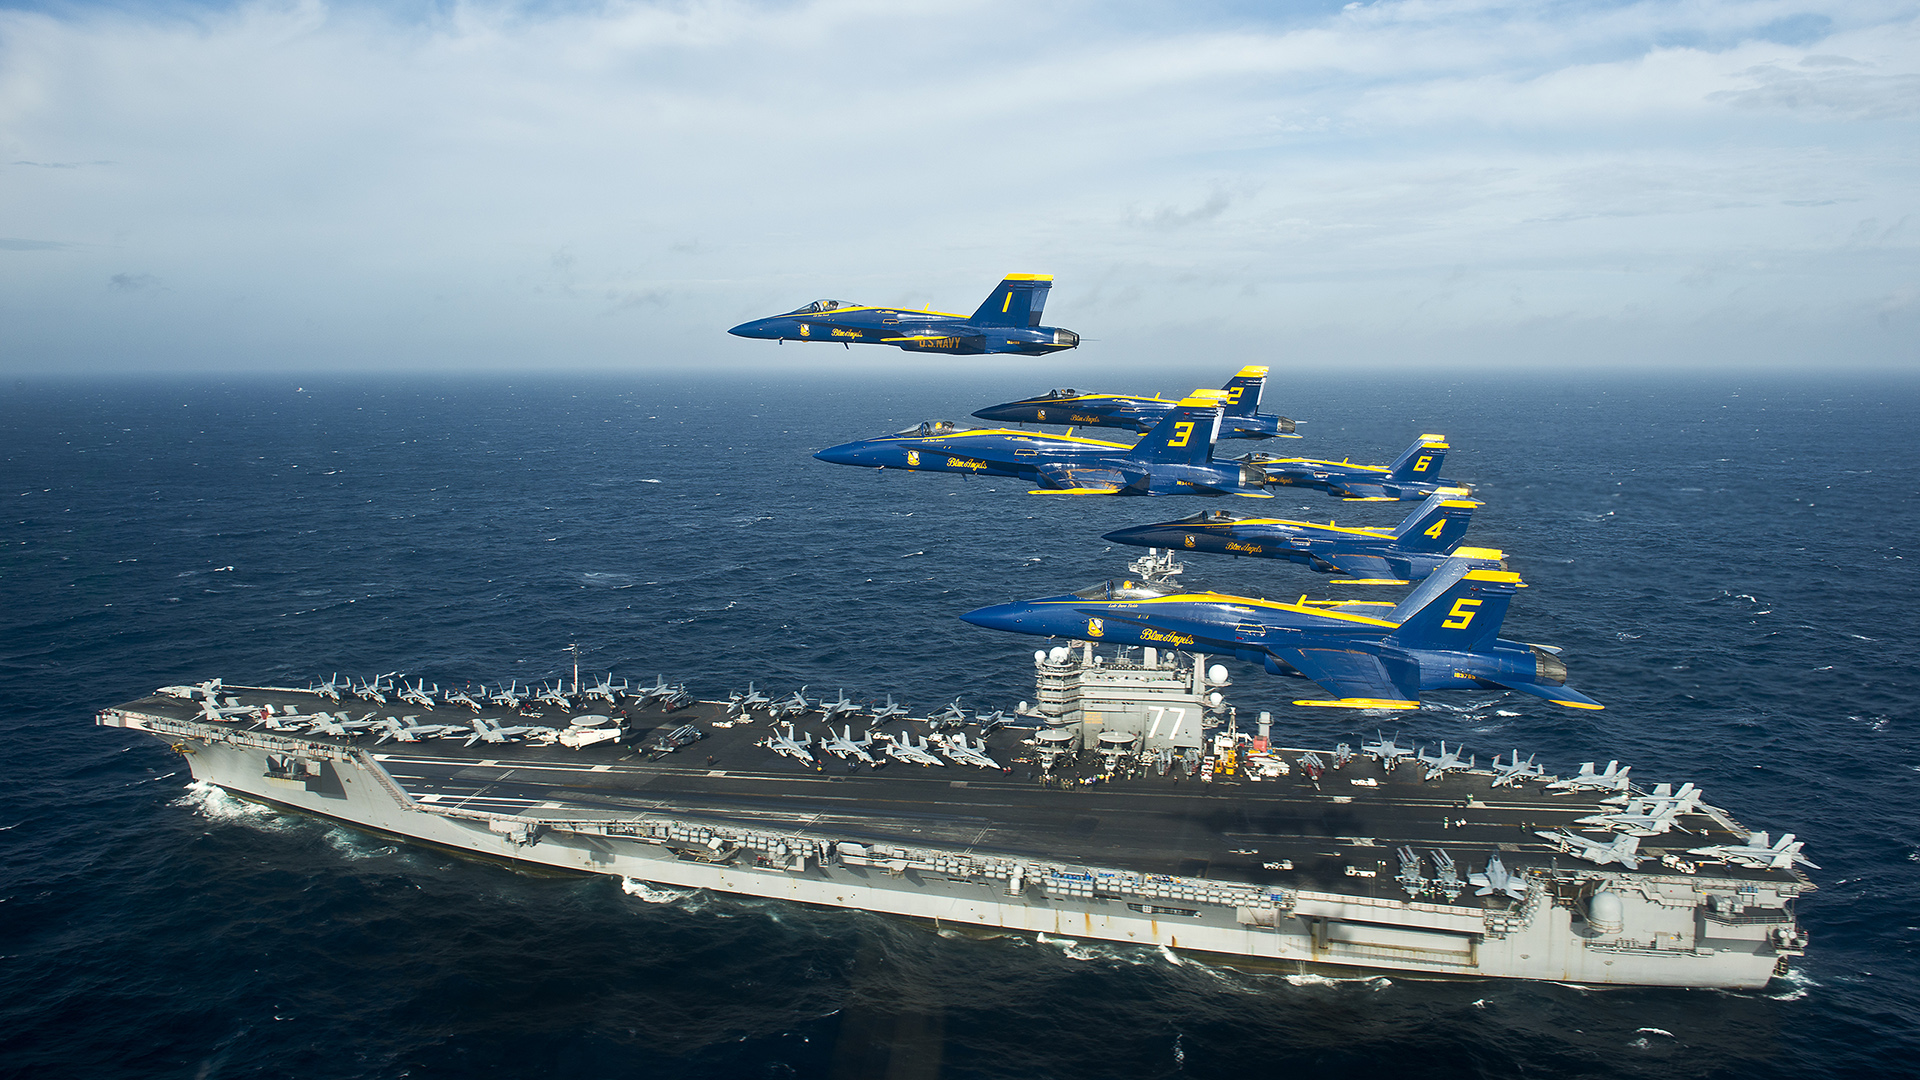 Blue Angels Jet Aircraft Carrier Ocean military wallpaper 1920x1080 1920x1080